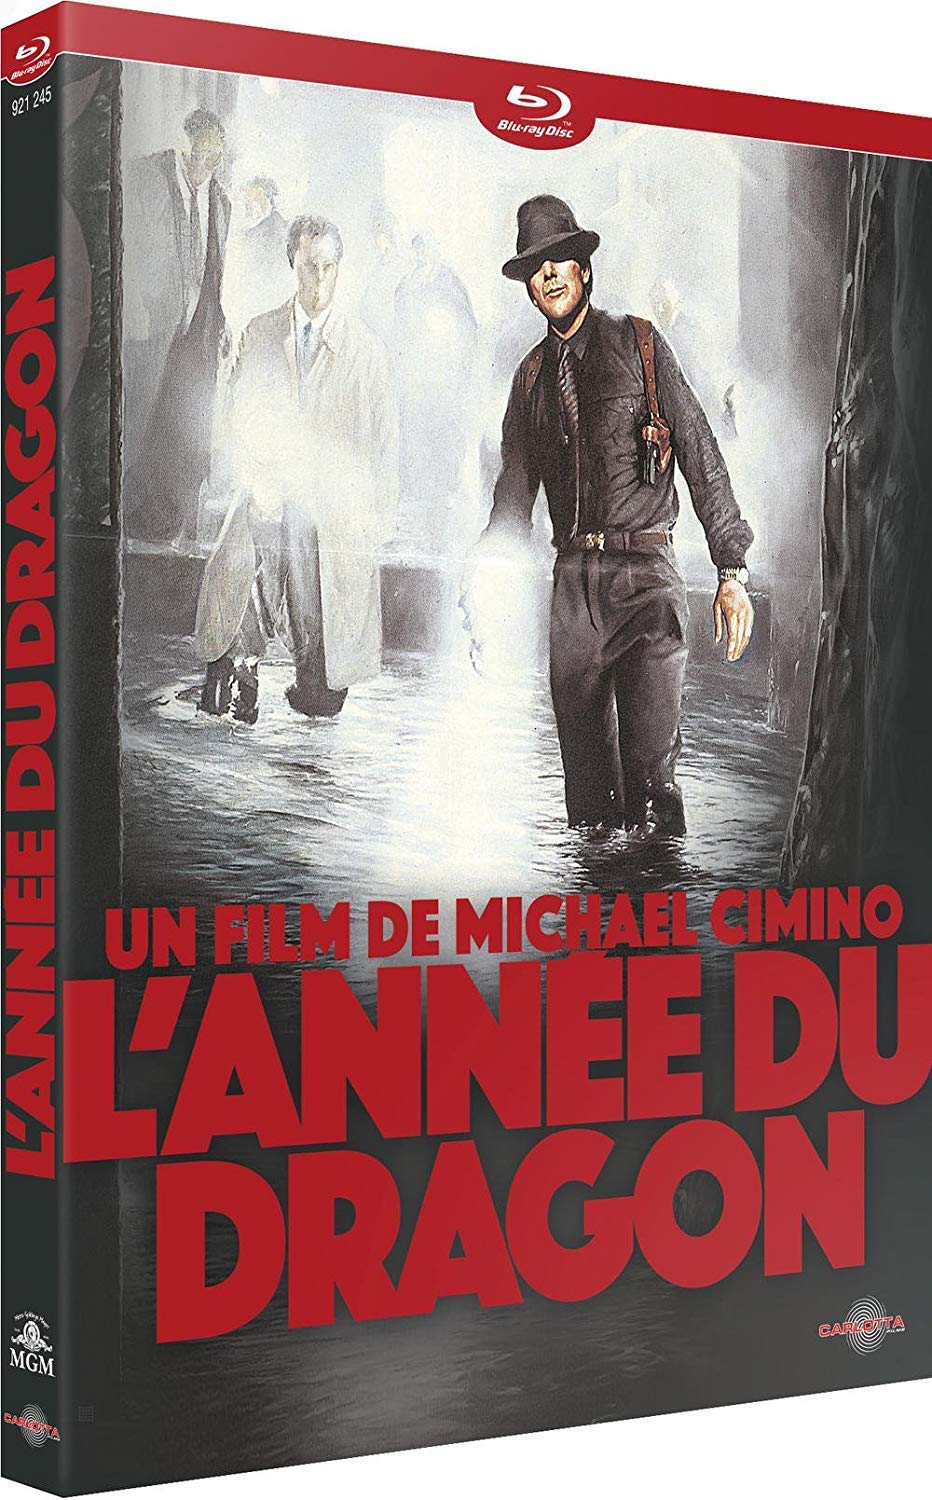 Cover Art for L'Annee du Dragon